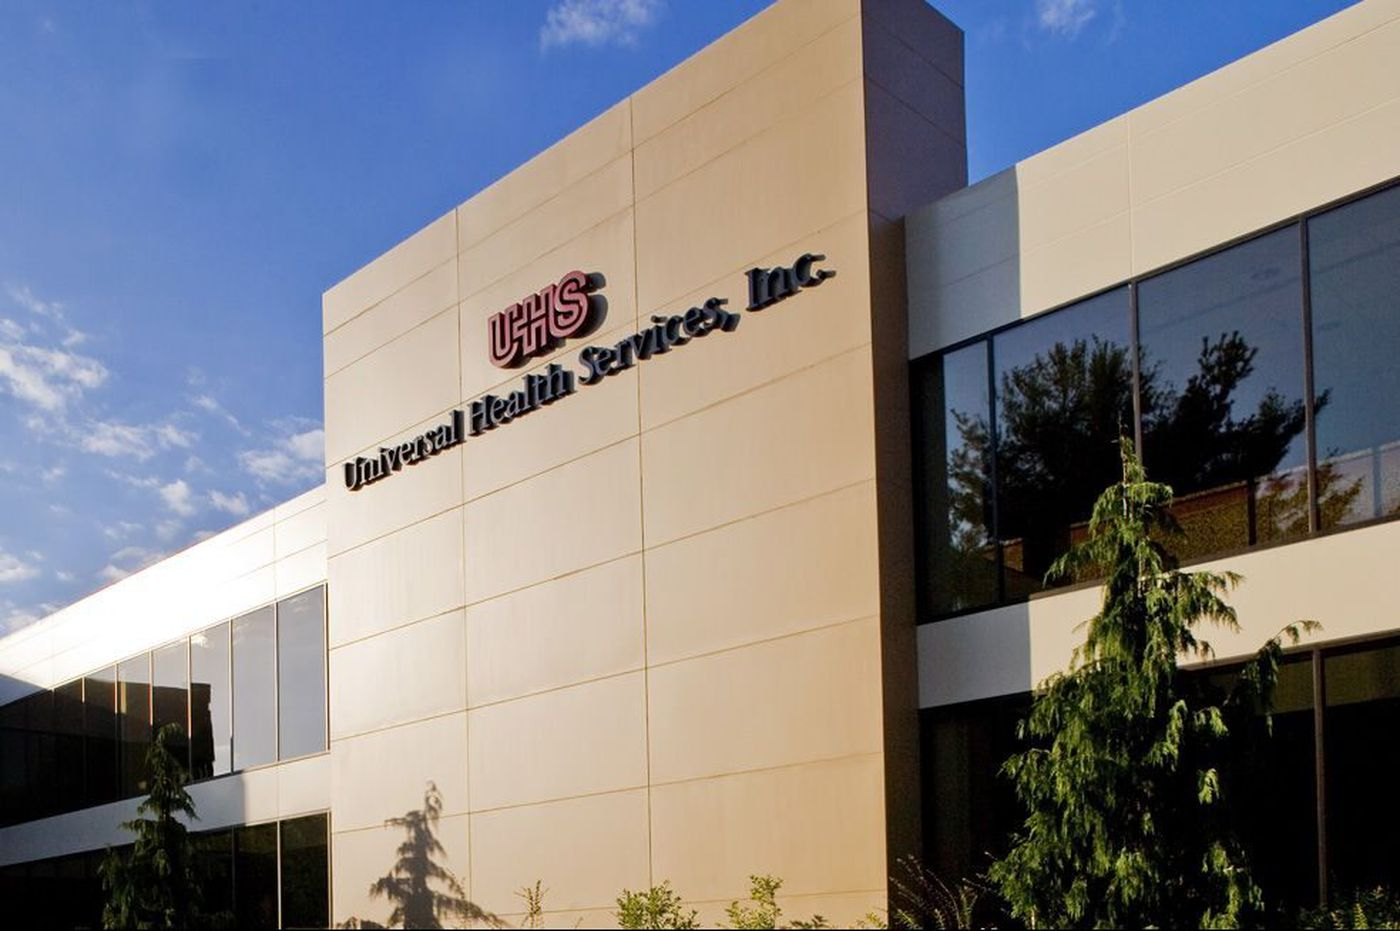 Universal Health Services shares down sharply on earnings